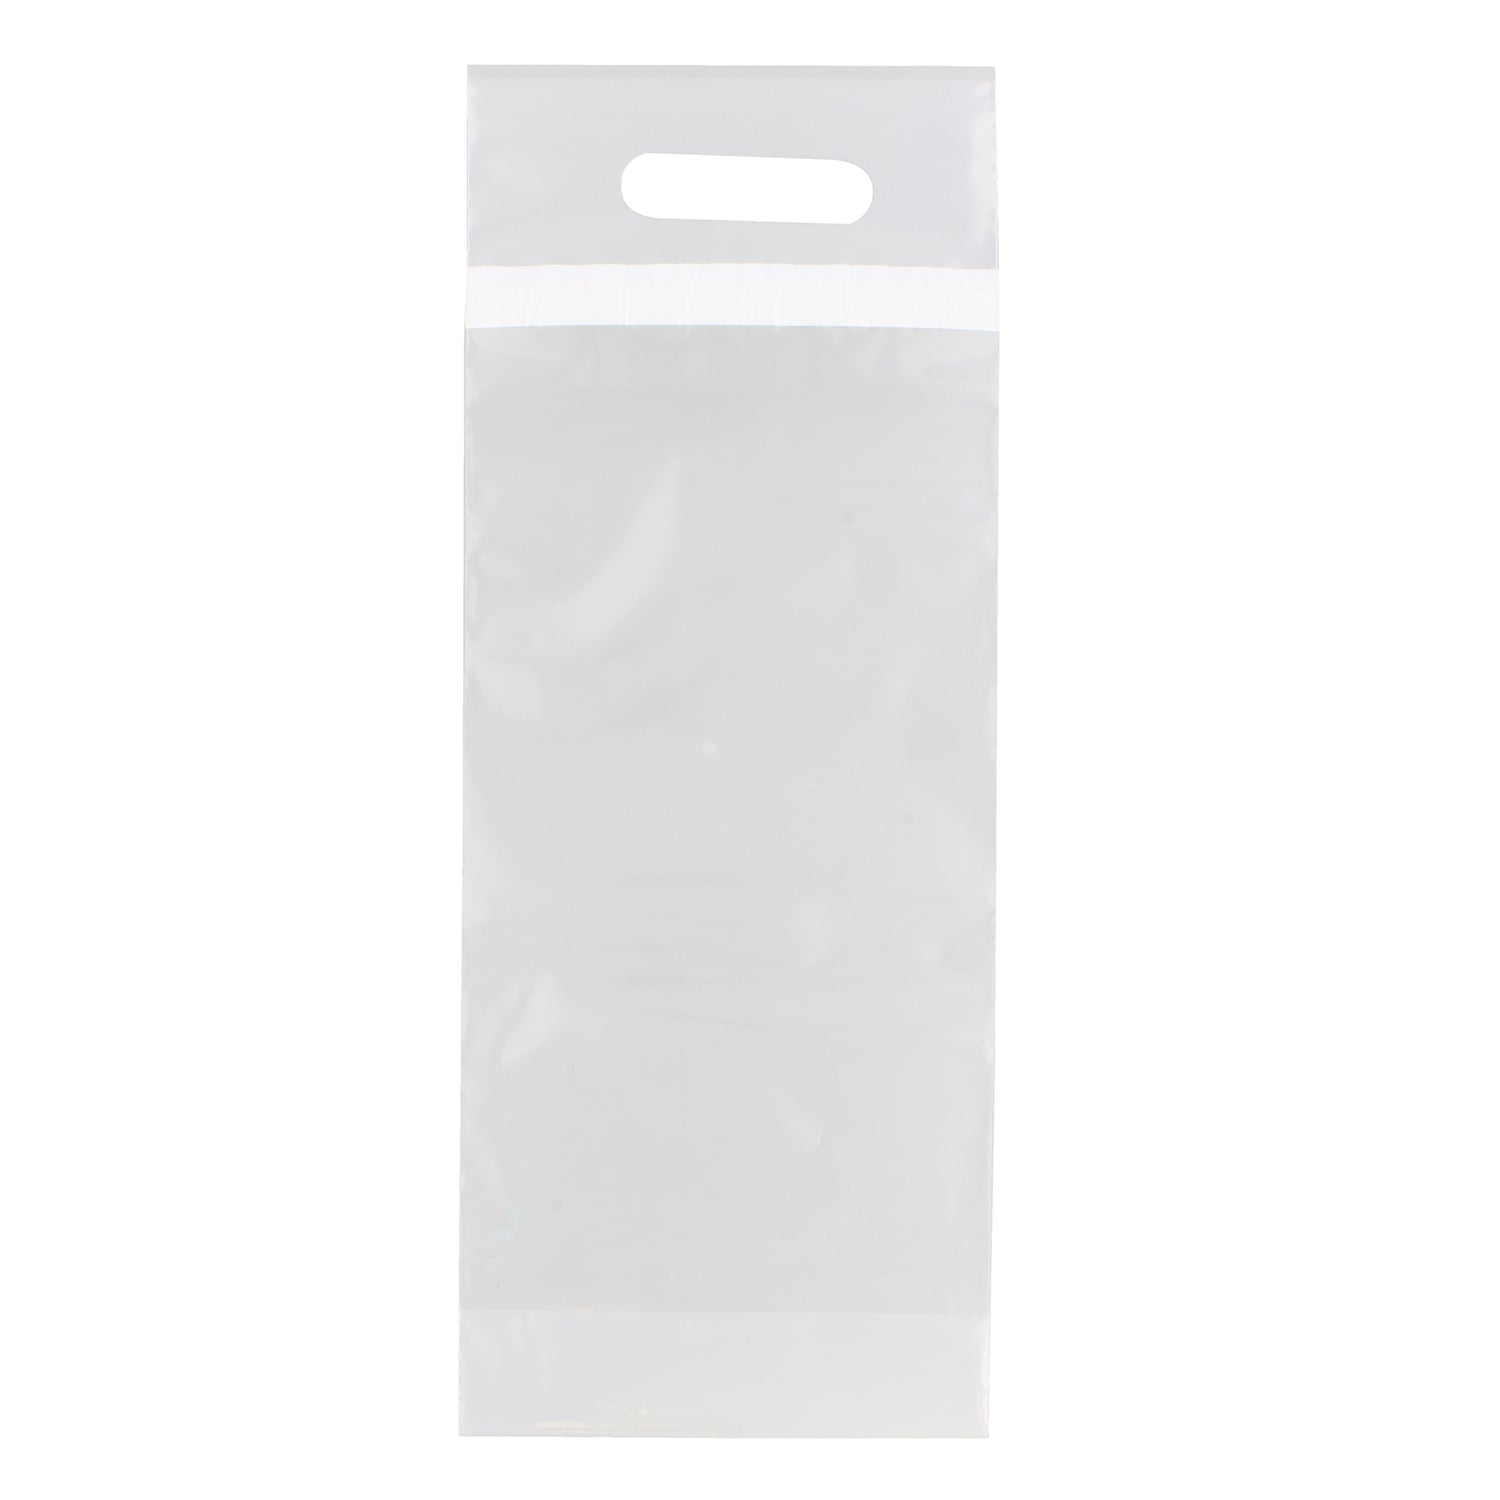 Sealable Wine Bag – 50 Pk Clear Plastic Bags for Wine Bottles